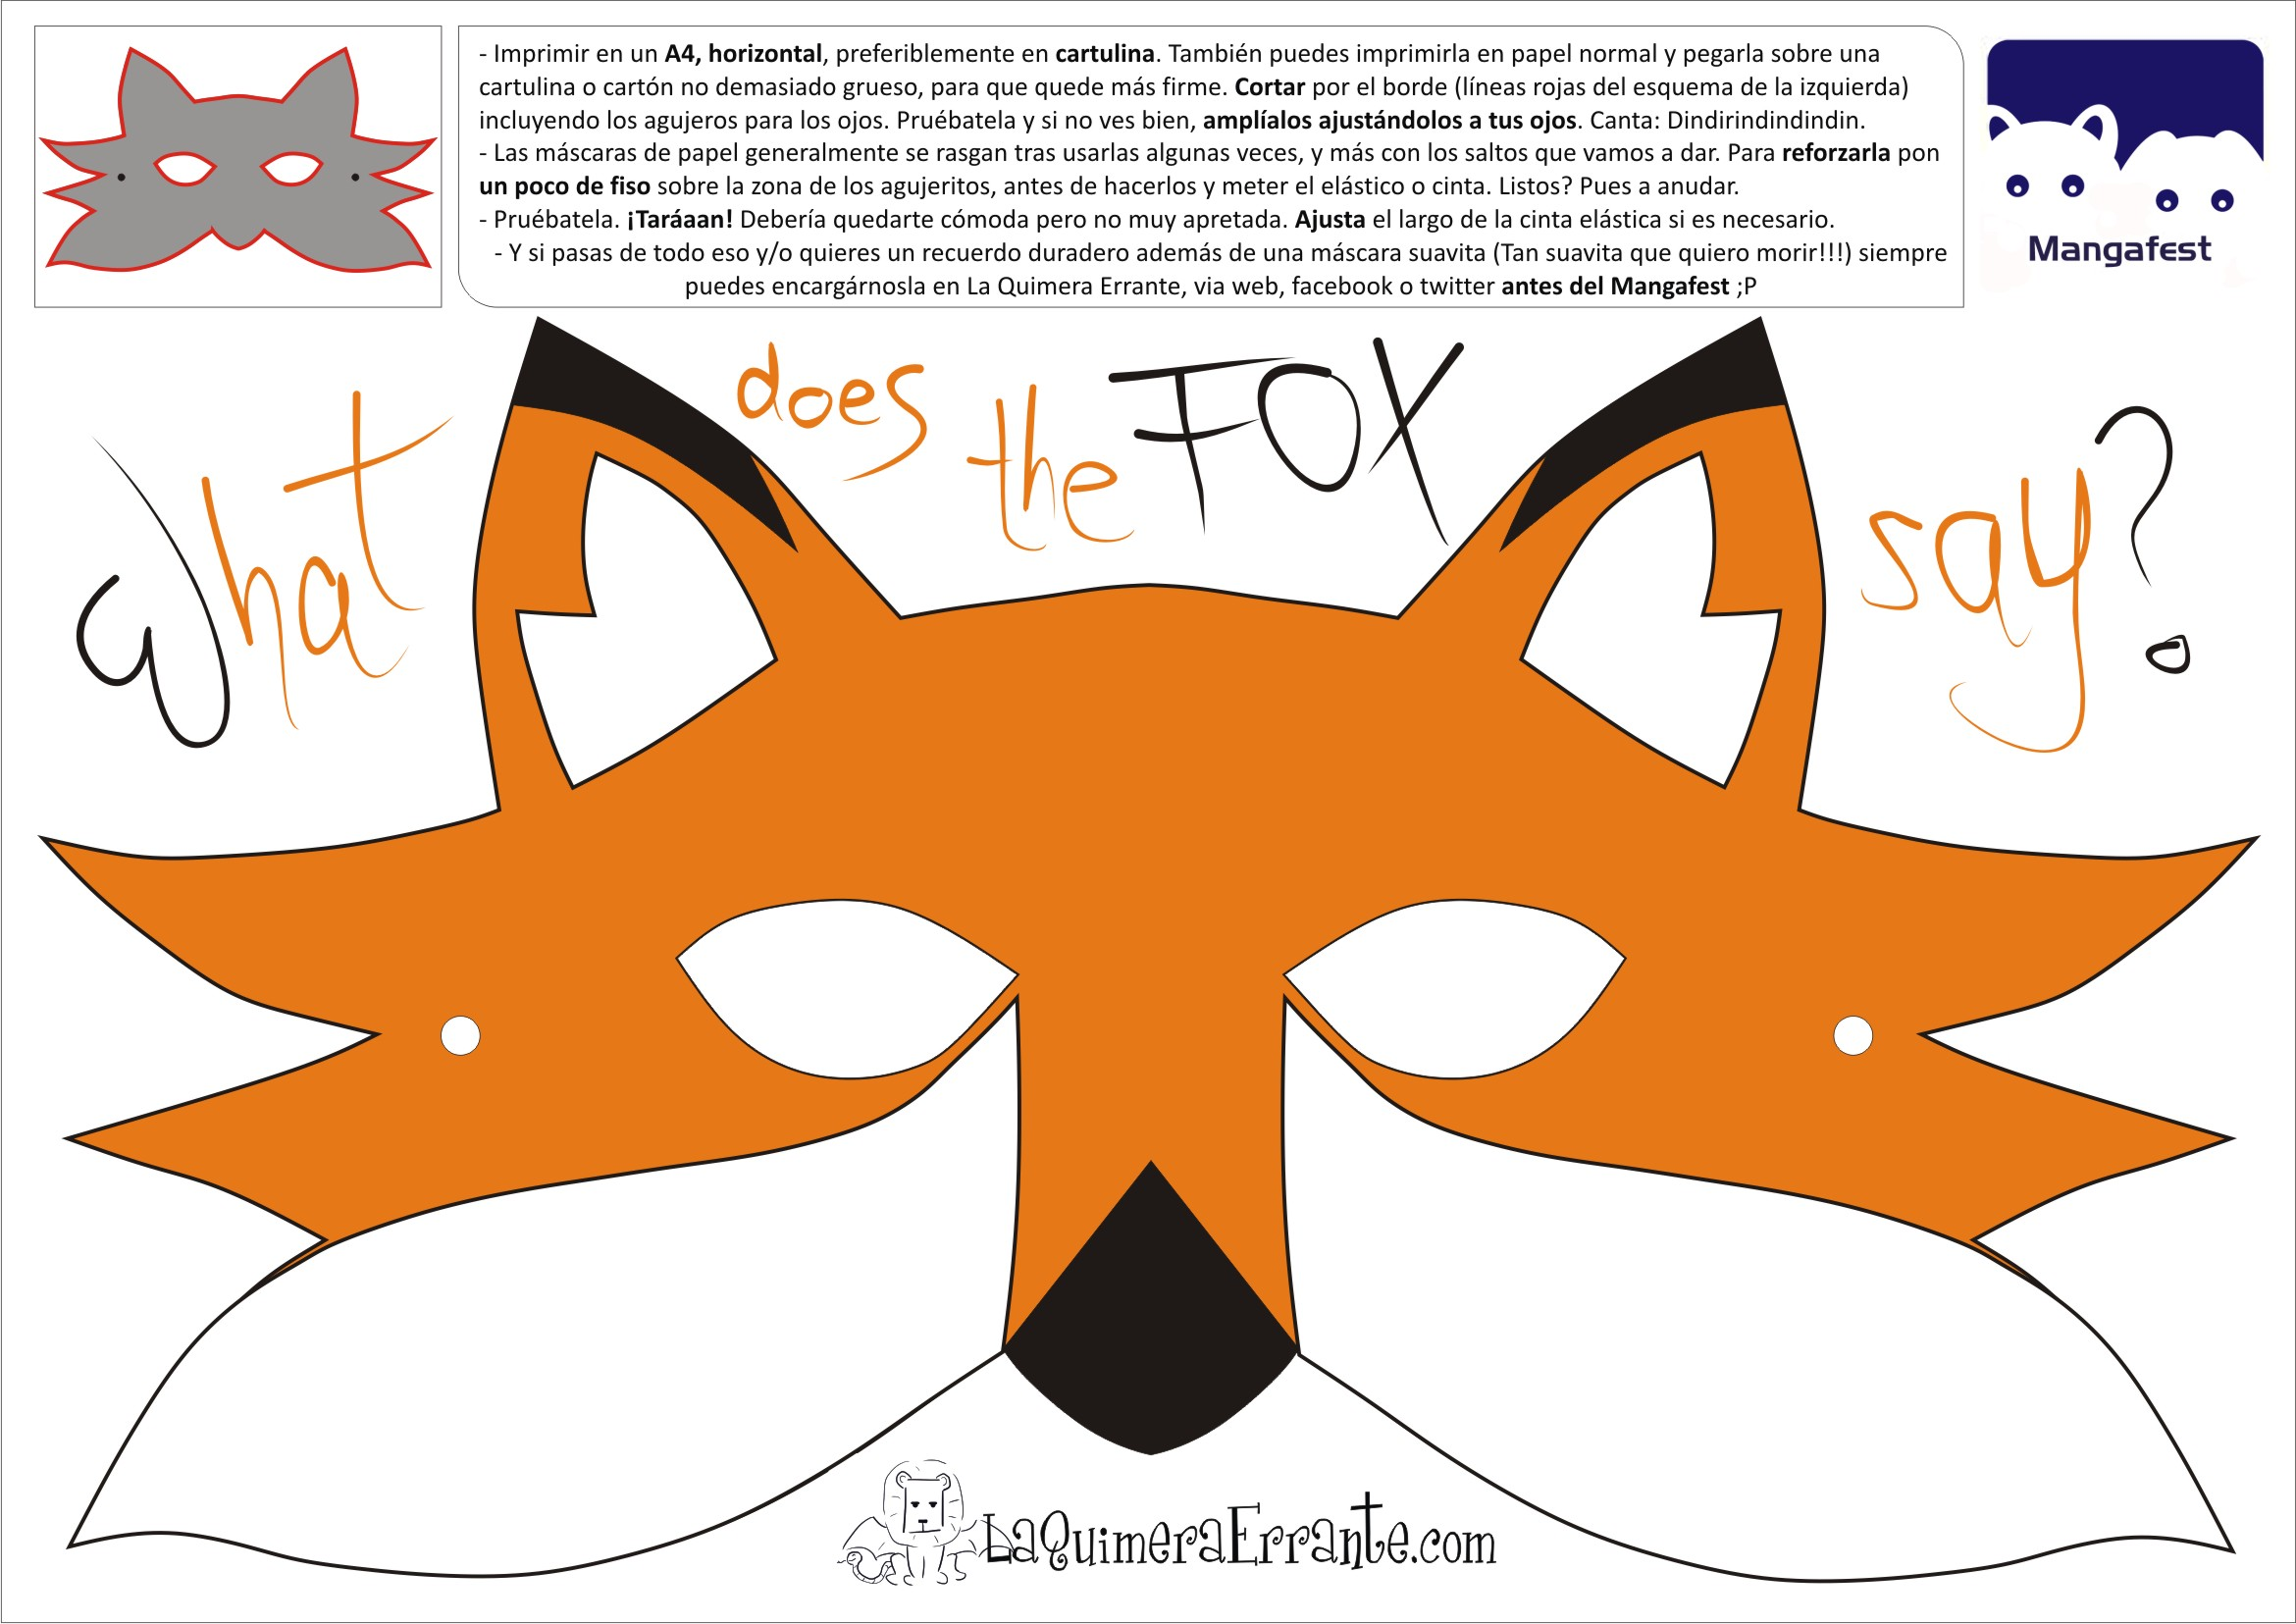 What Does The Fox Say? (Naranja)